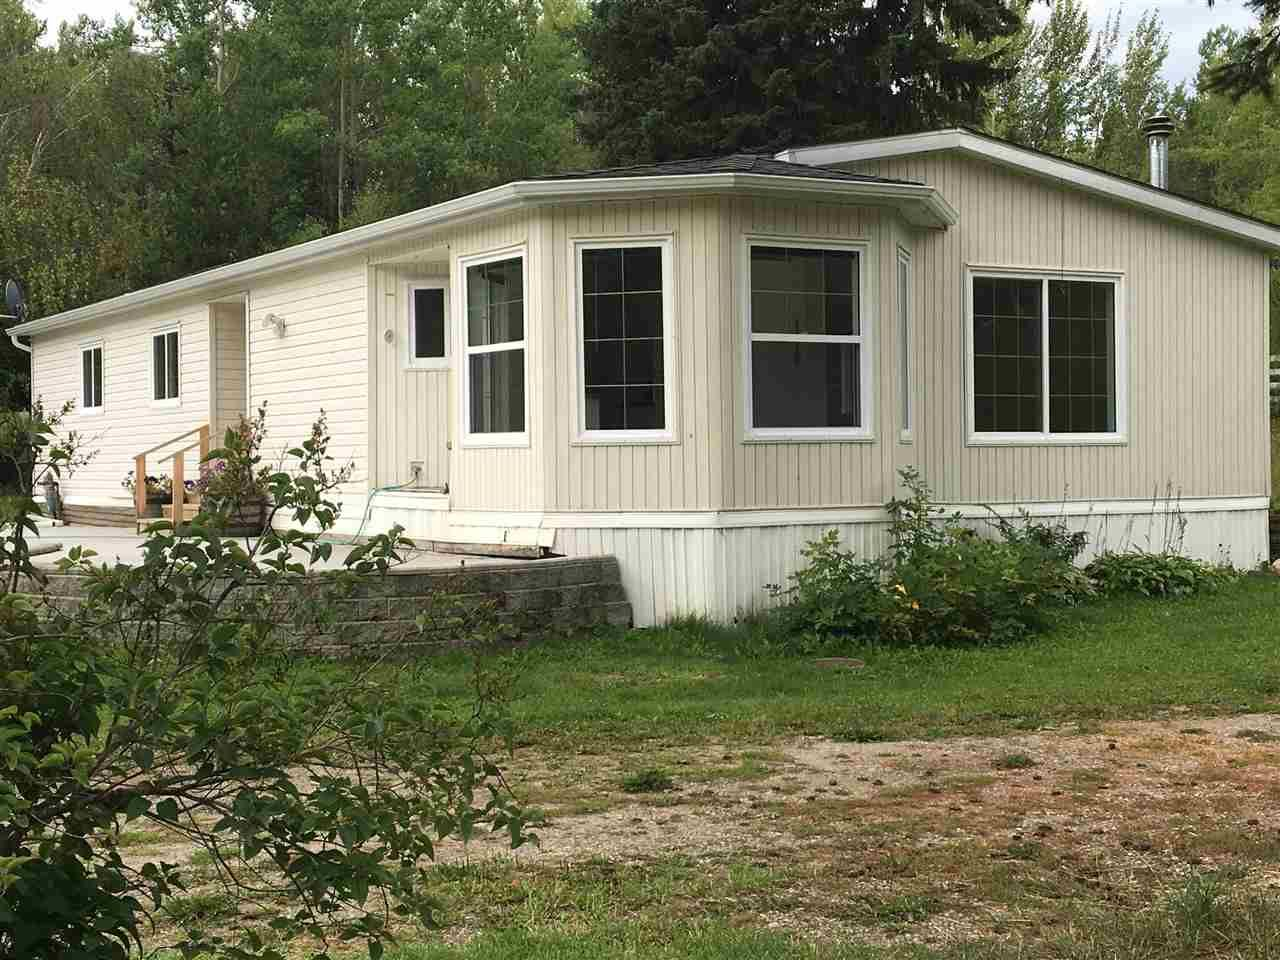 Photo 23: Photos: 2404 N VERNON Road in Quesnel: Bouchie Lake Manufactured Home for sale (Quesnel (Zone 28))  : MLS®# R2492081